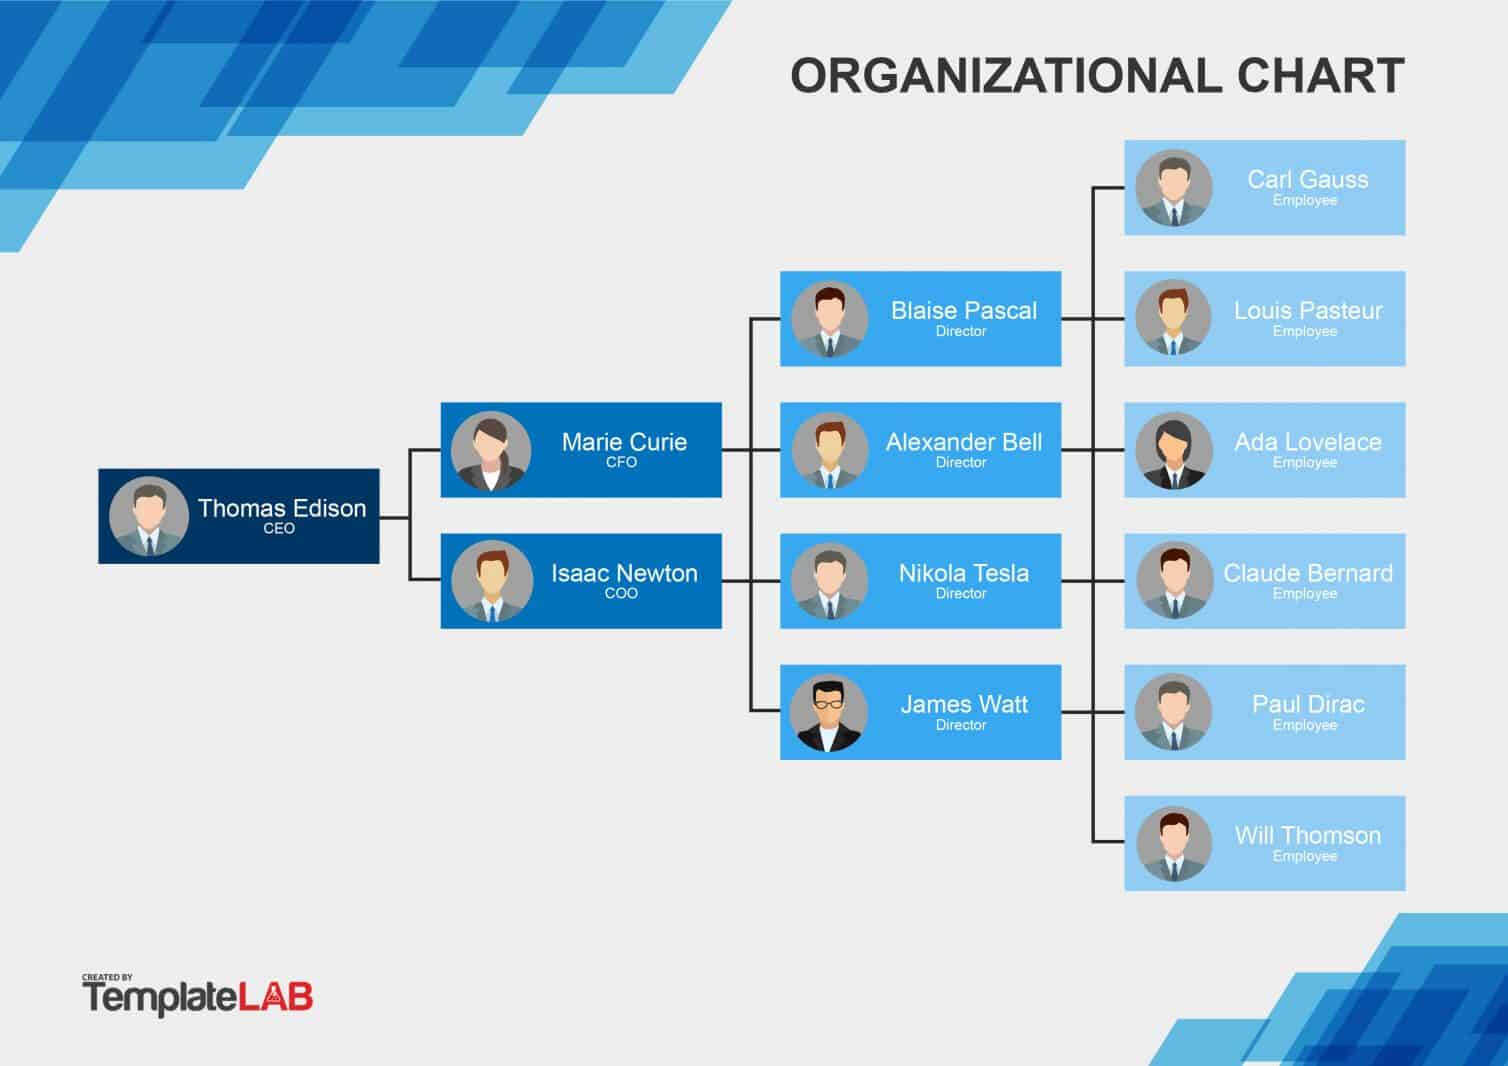 40 Organizational Chart Templates (Word, Excel, Powerpoint) Throughout Org Chart Template Word